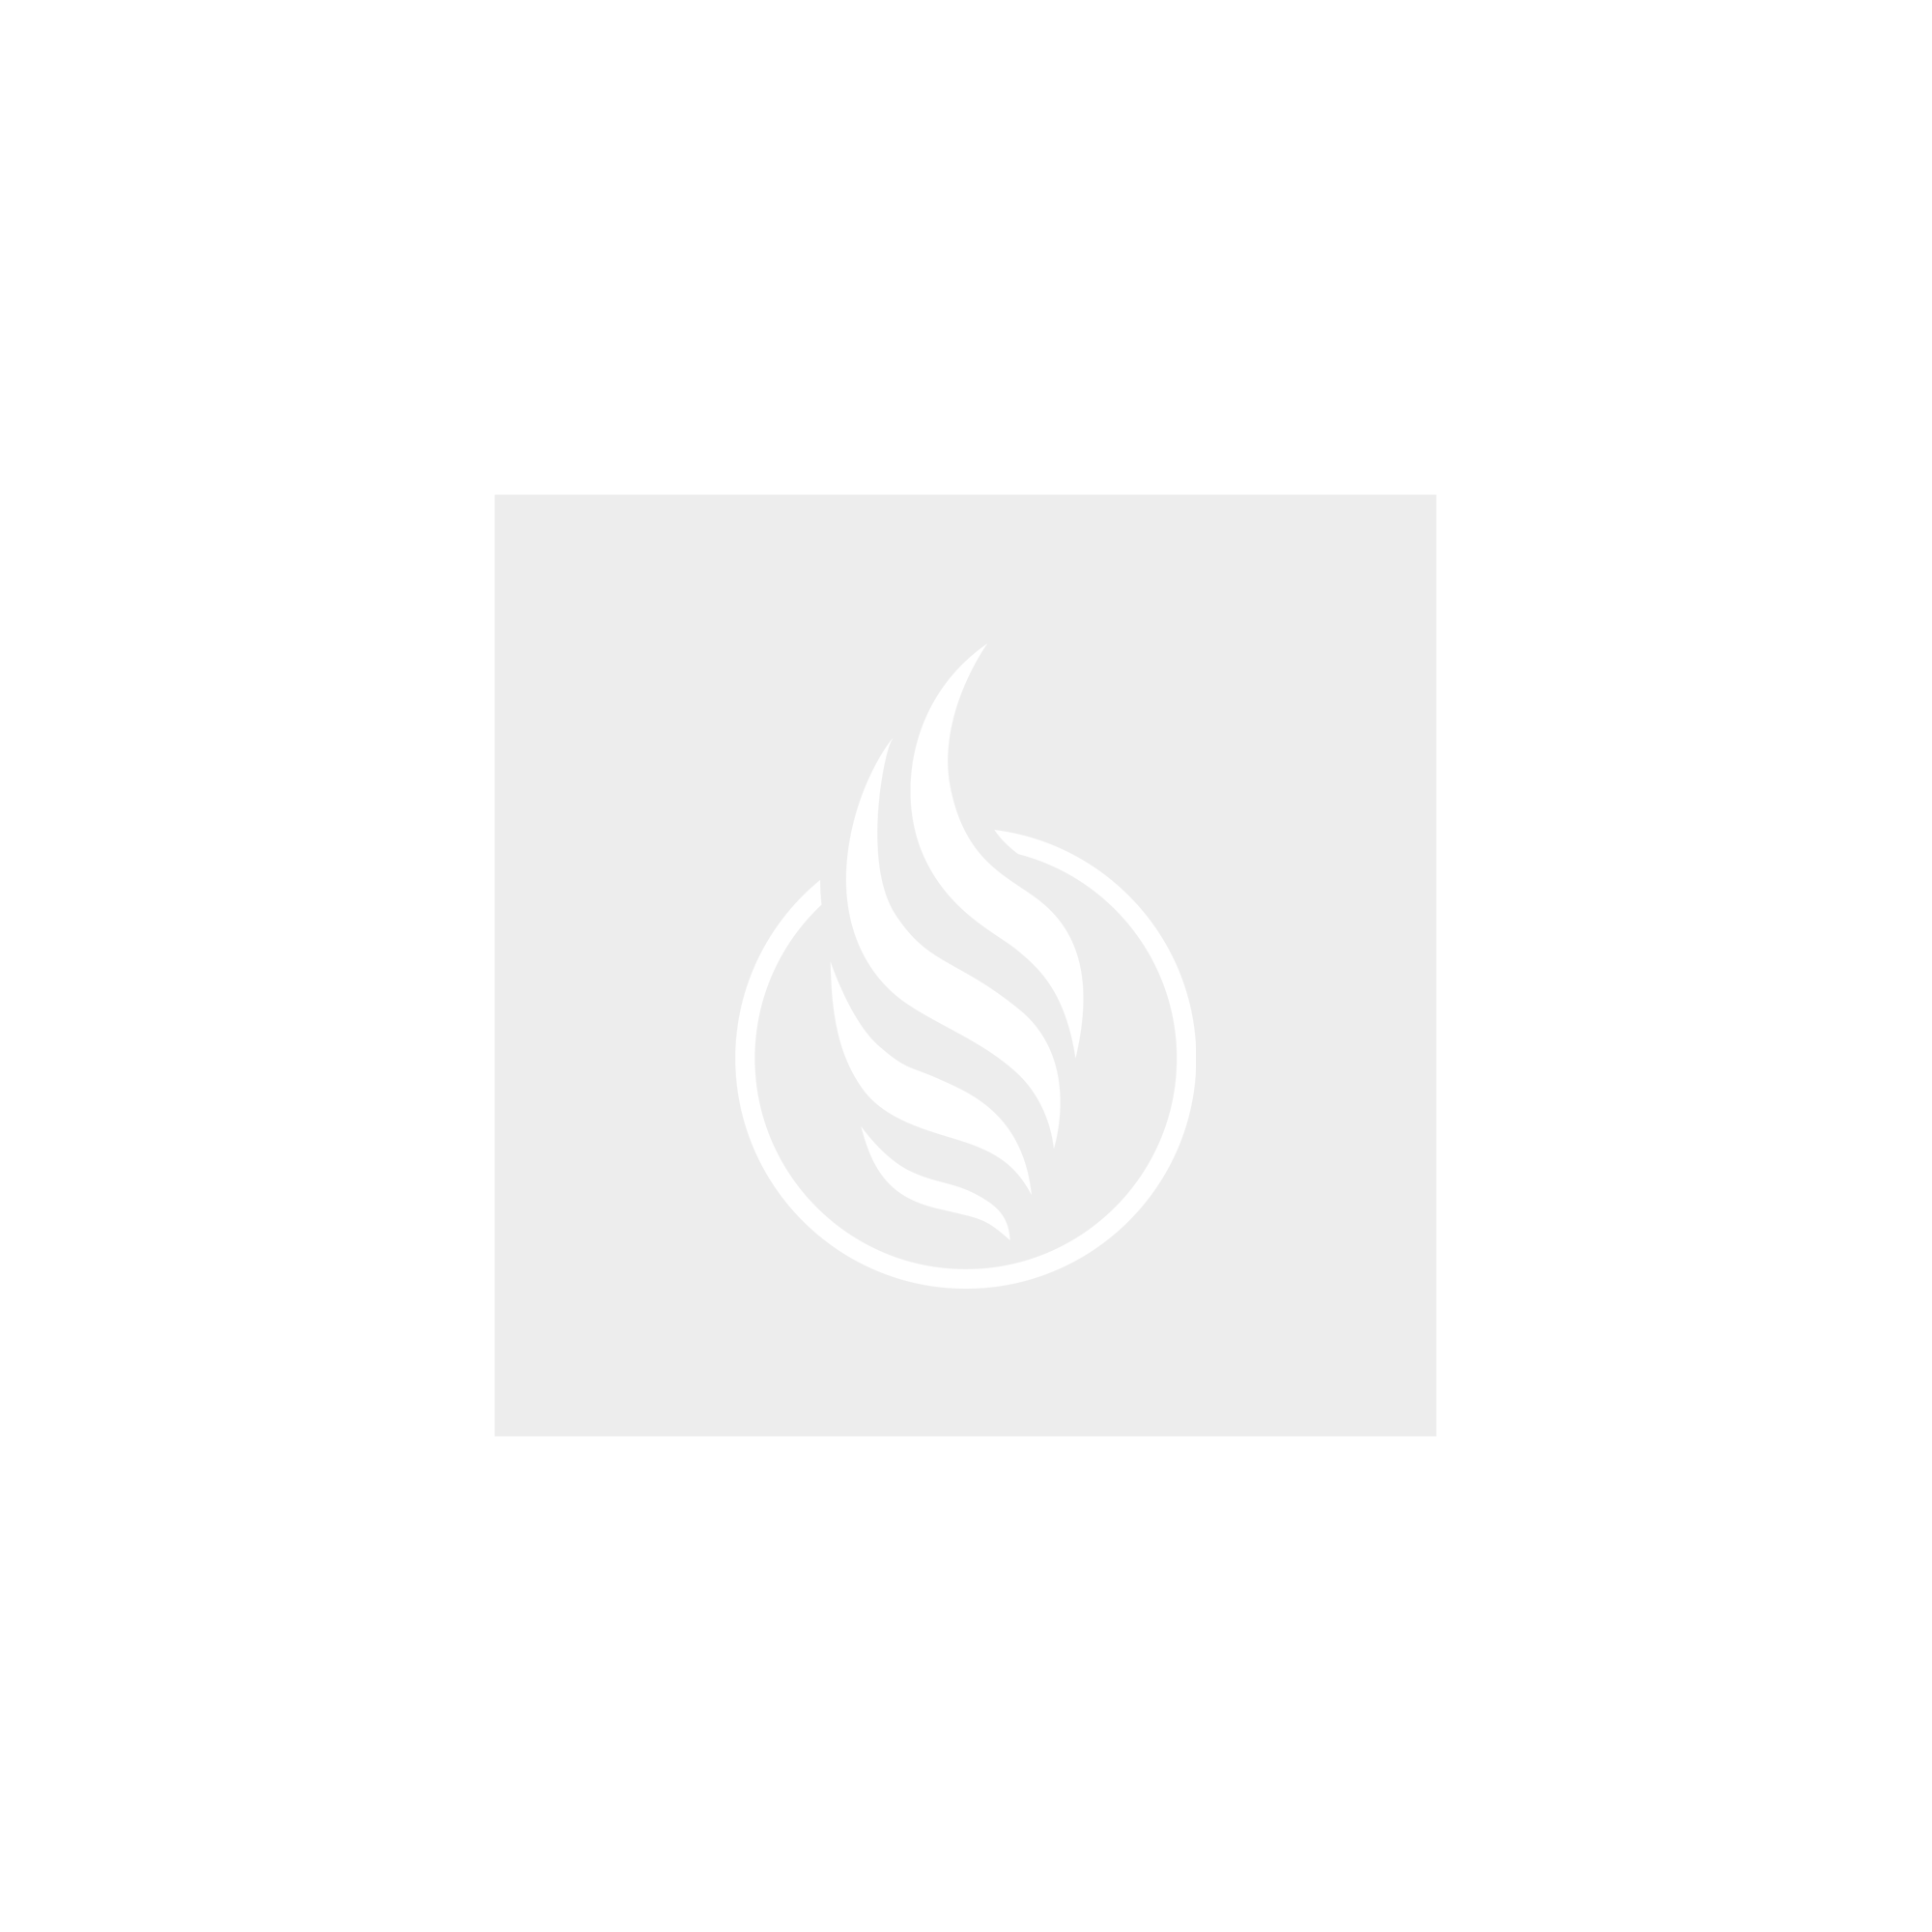 Nord 4 Replacement RPM Pod